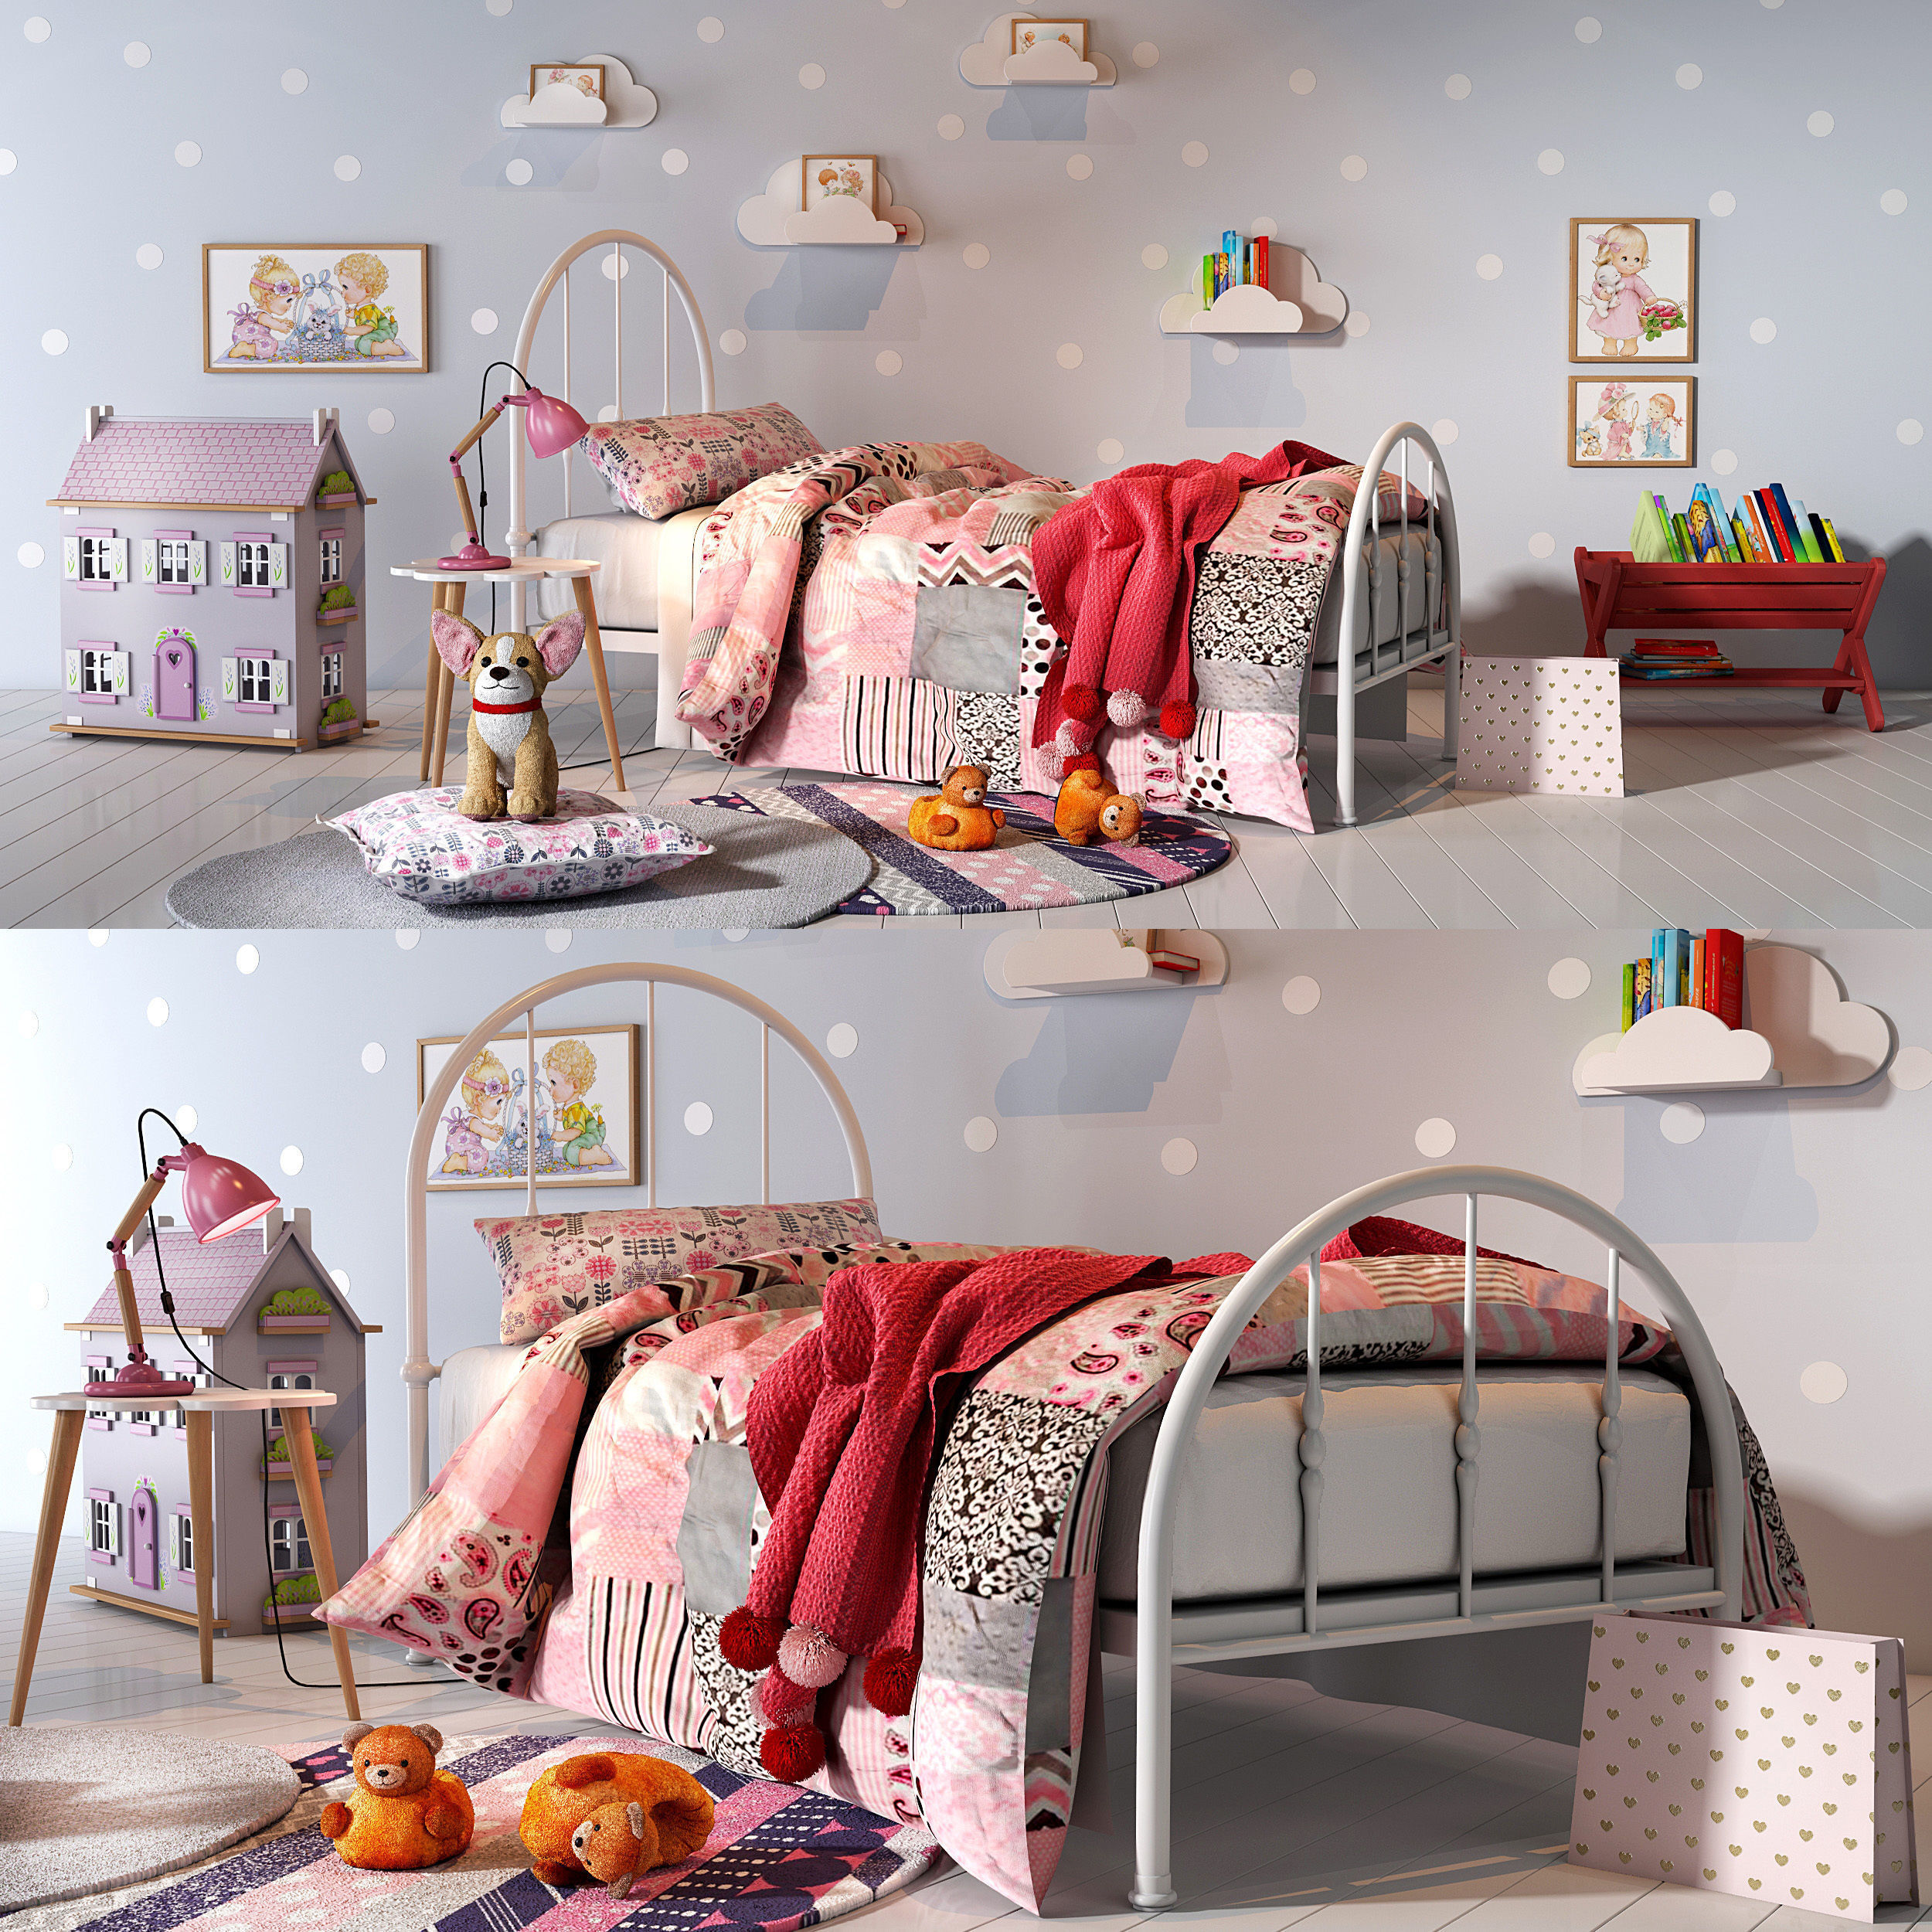 Girl bedroom set 01 | 3D model